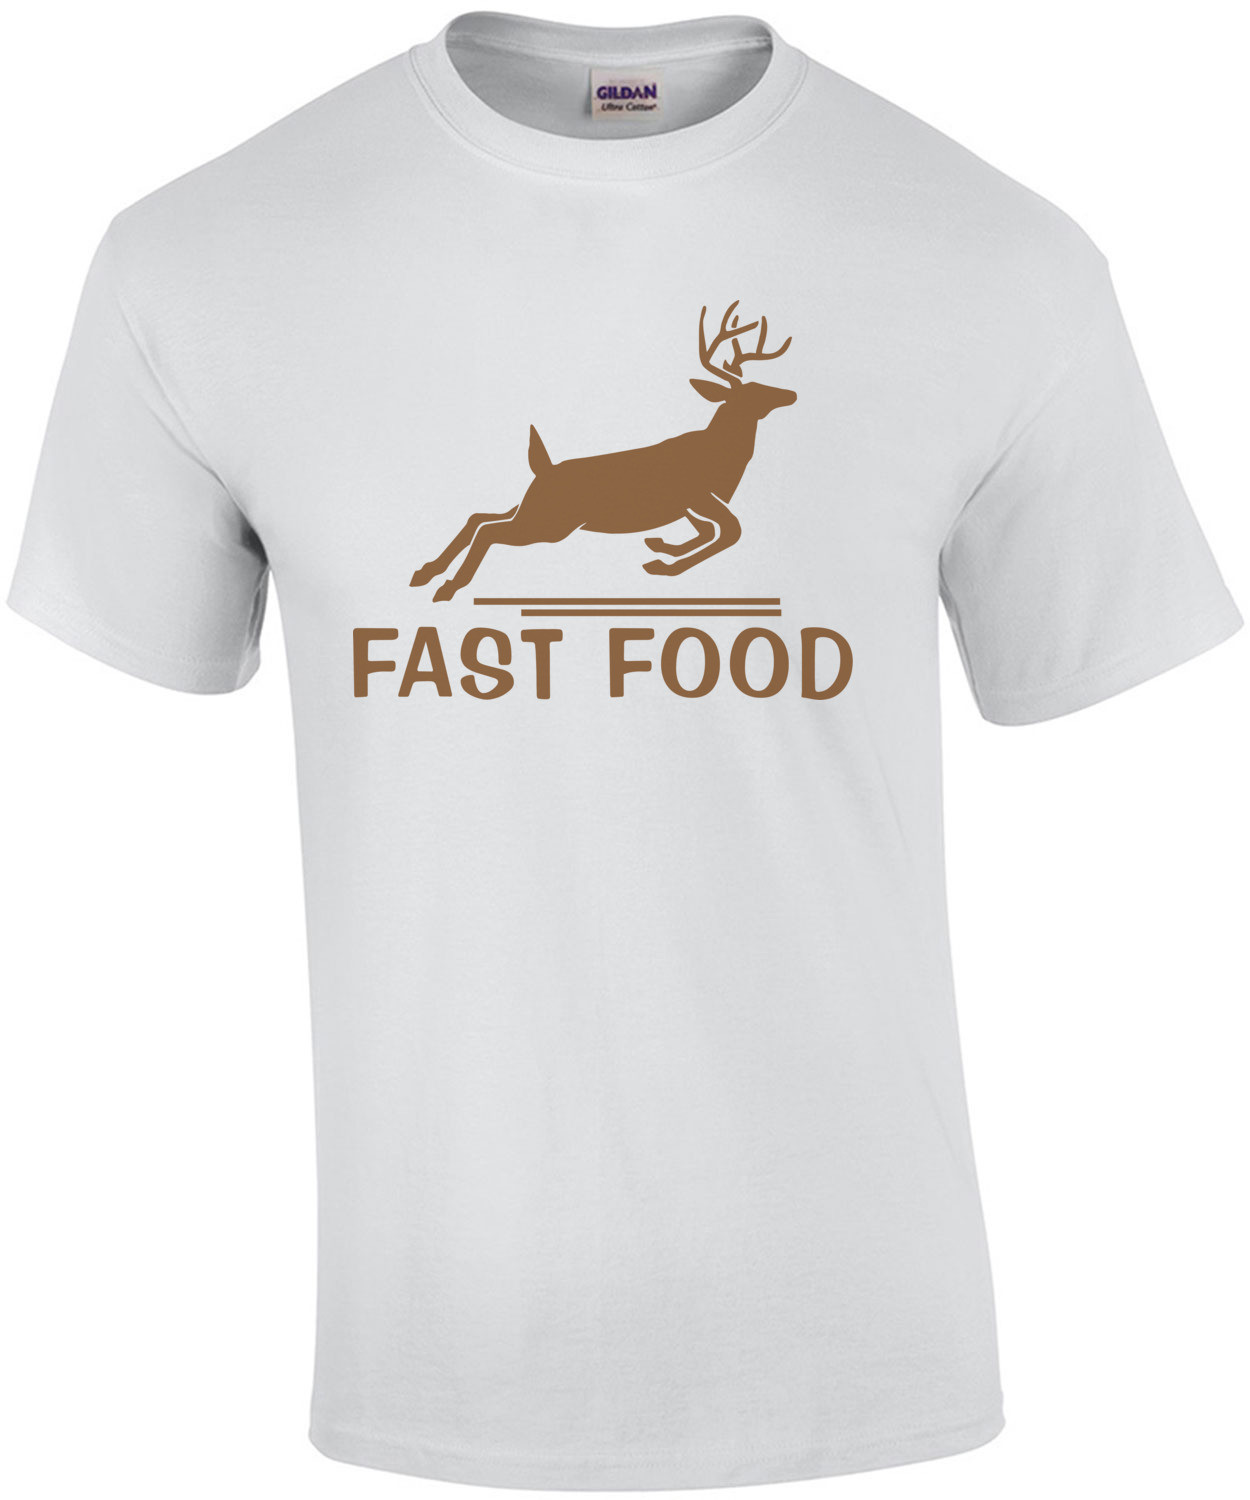 Fast Food - Funny Hunting T-Shirt